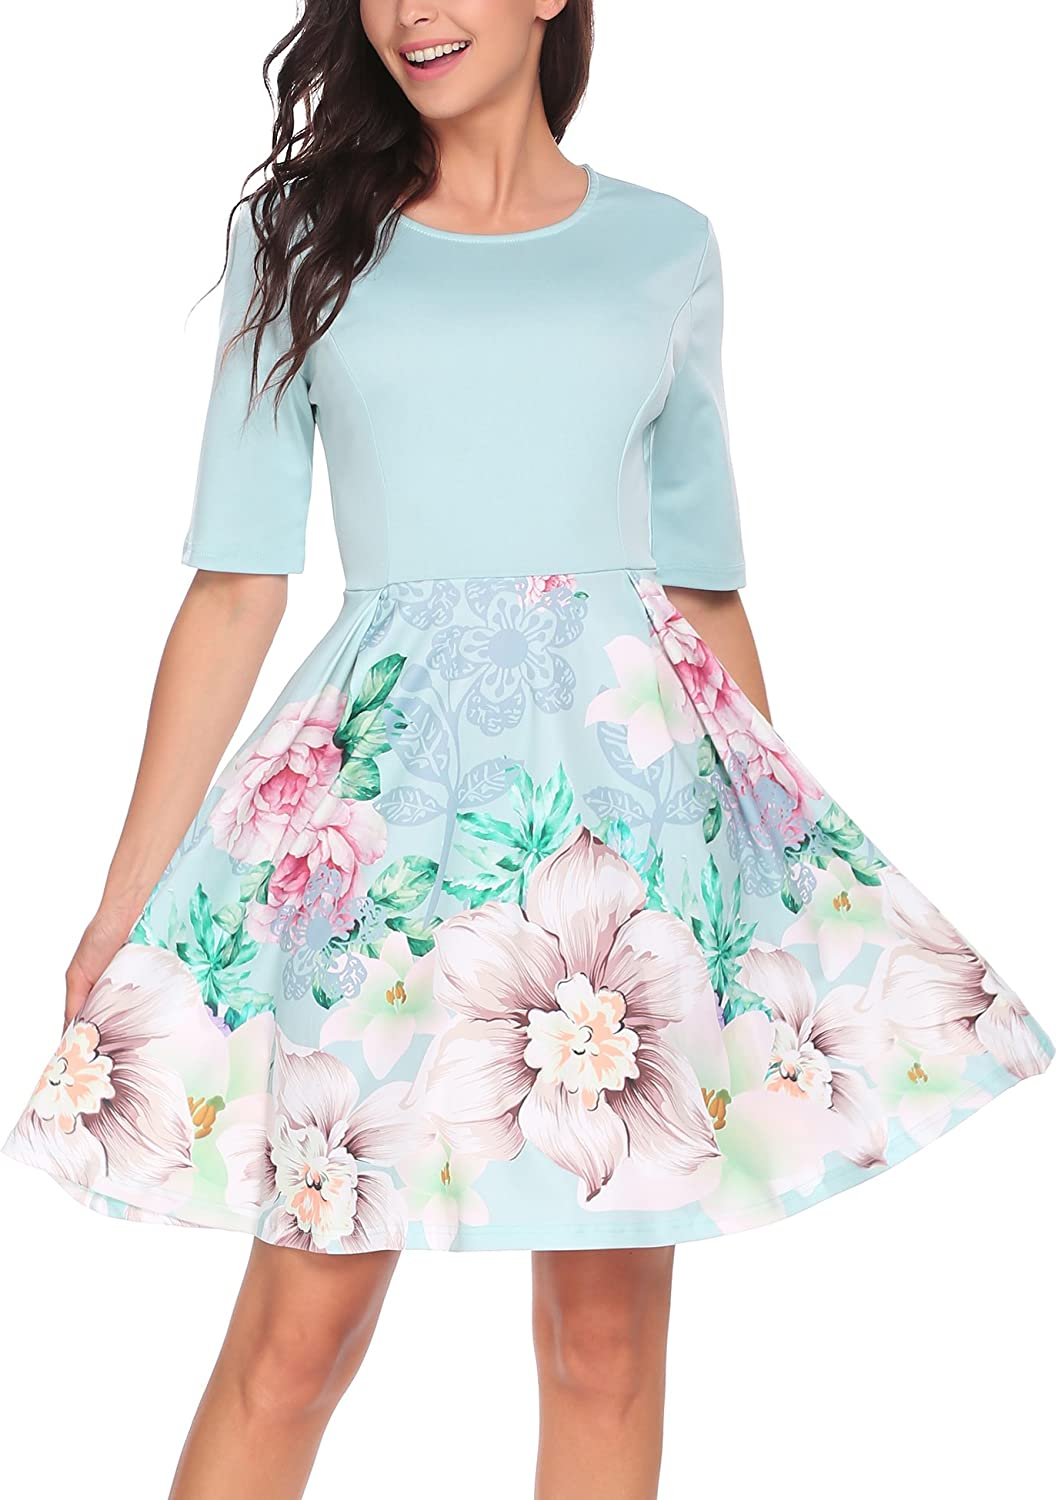 BEAUTYTALK Women's Vintage Patchwork ONeck Half Sleeve Puffy Swing Casual ALine Party Dress